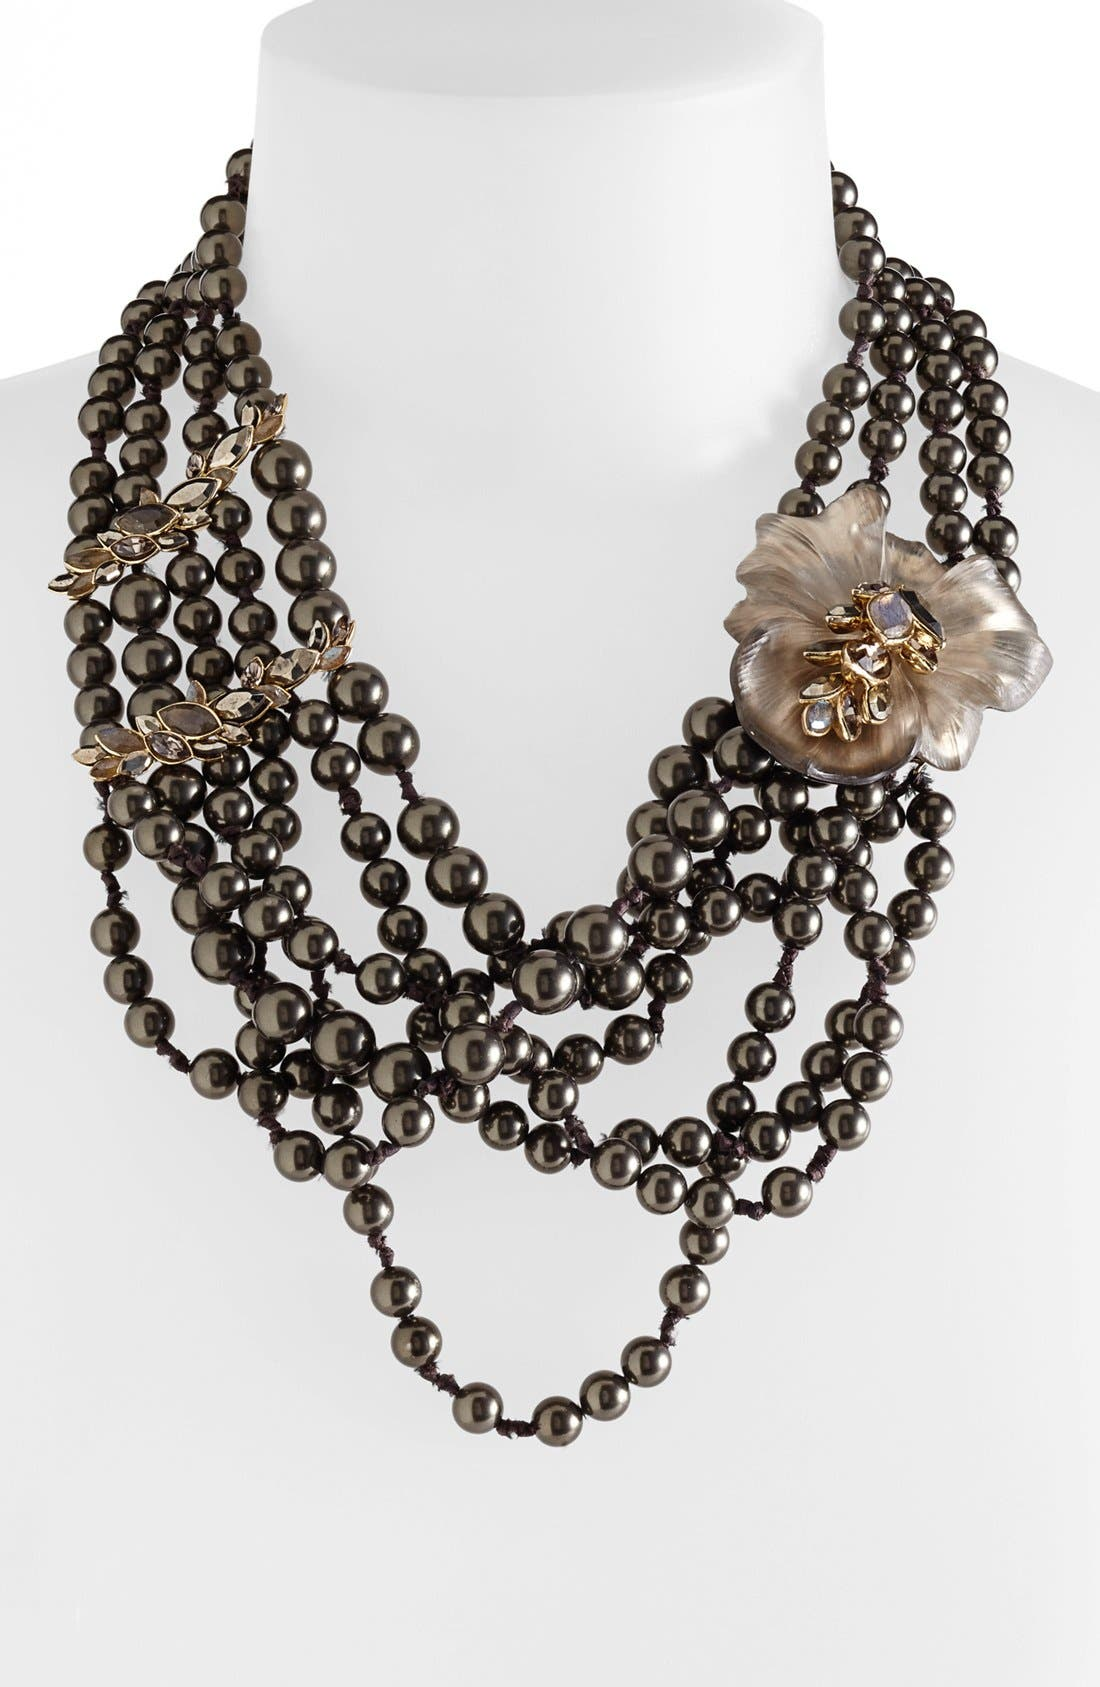 Alternate Image 1 Selected - Alexis Bittar 'Lucite® - Neo Bohemian' Statement Necklace